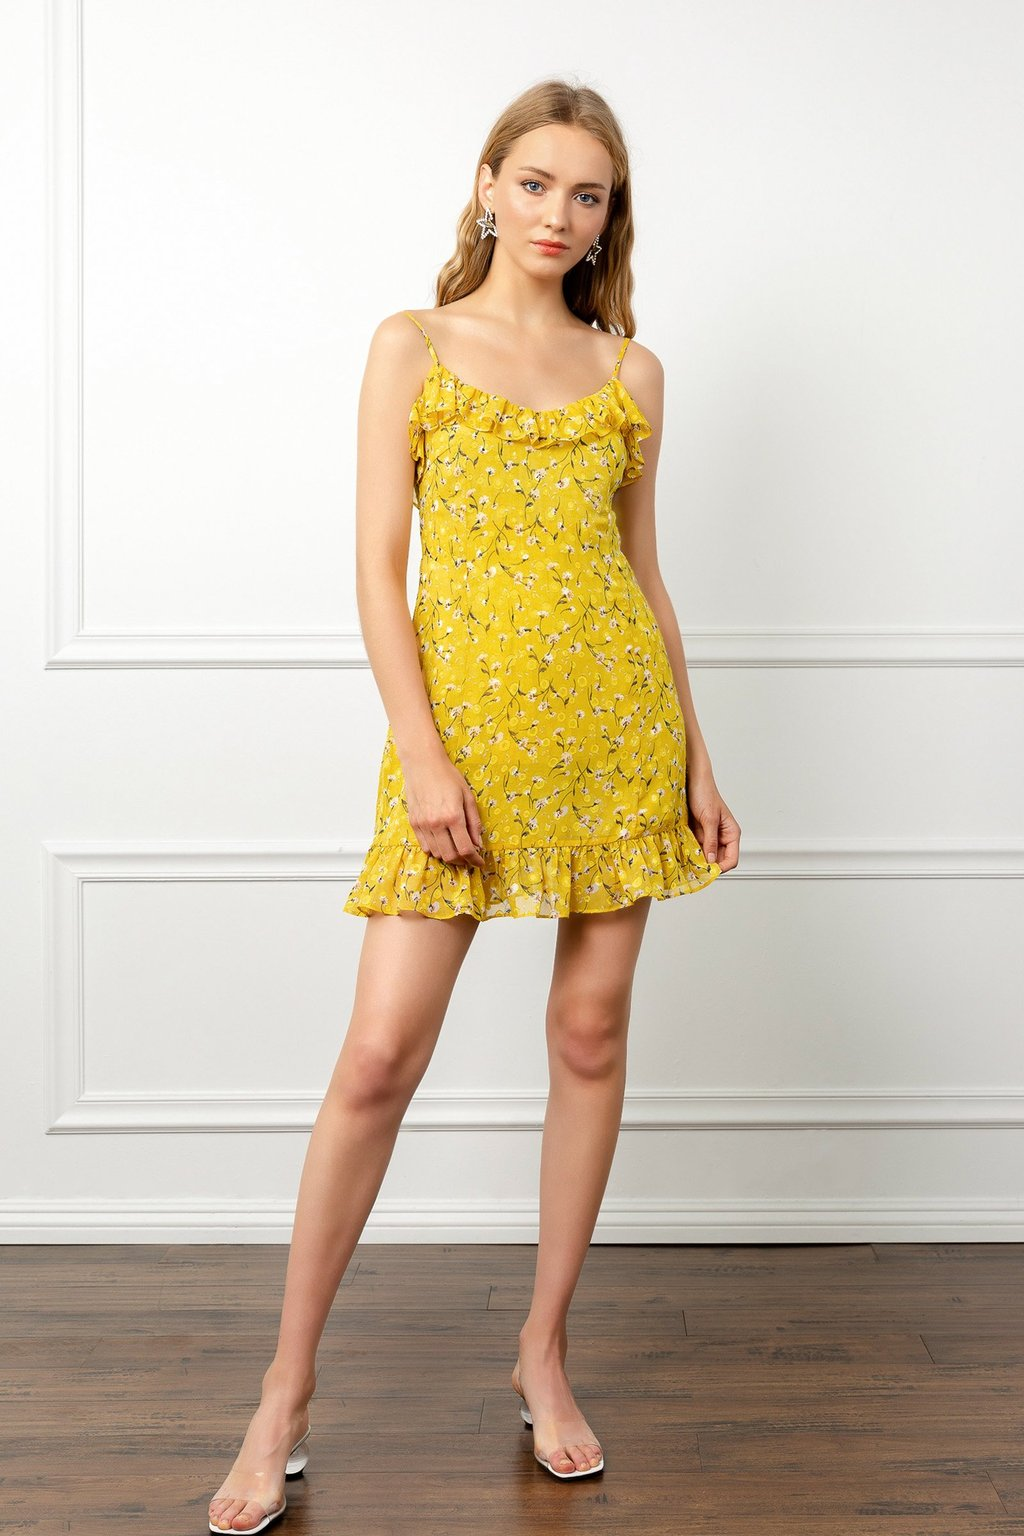 Yellow Summer Dress by J.ING women's fashion clothing